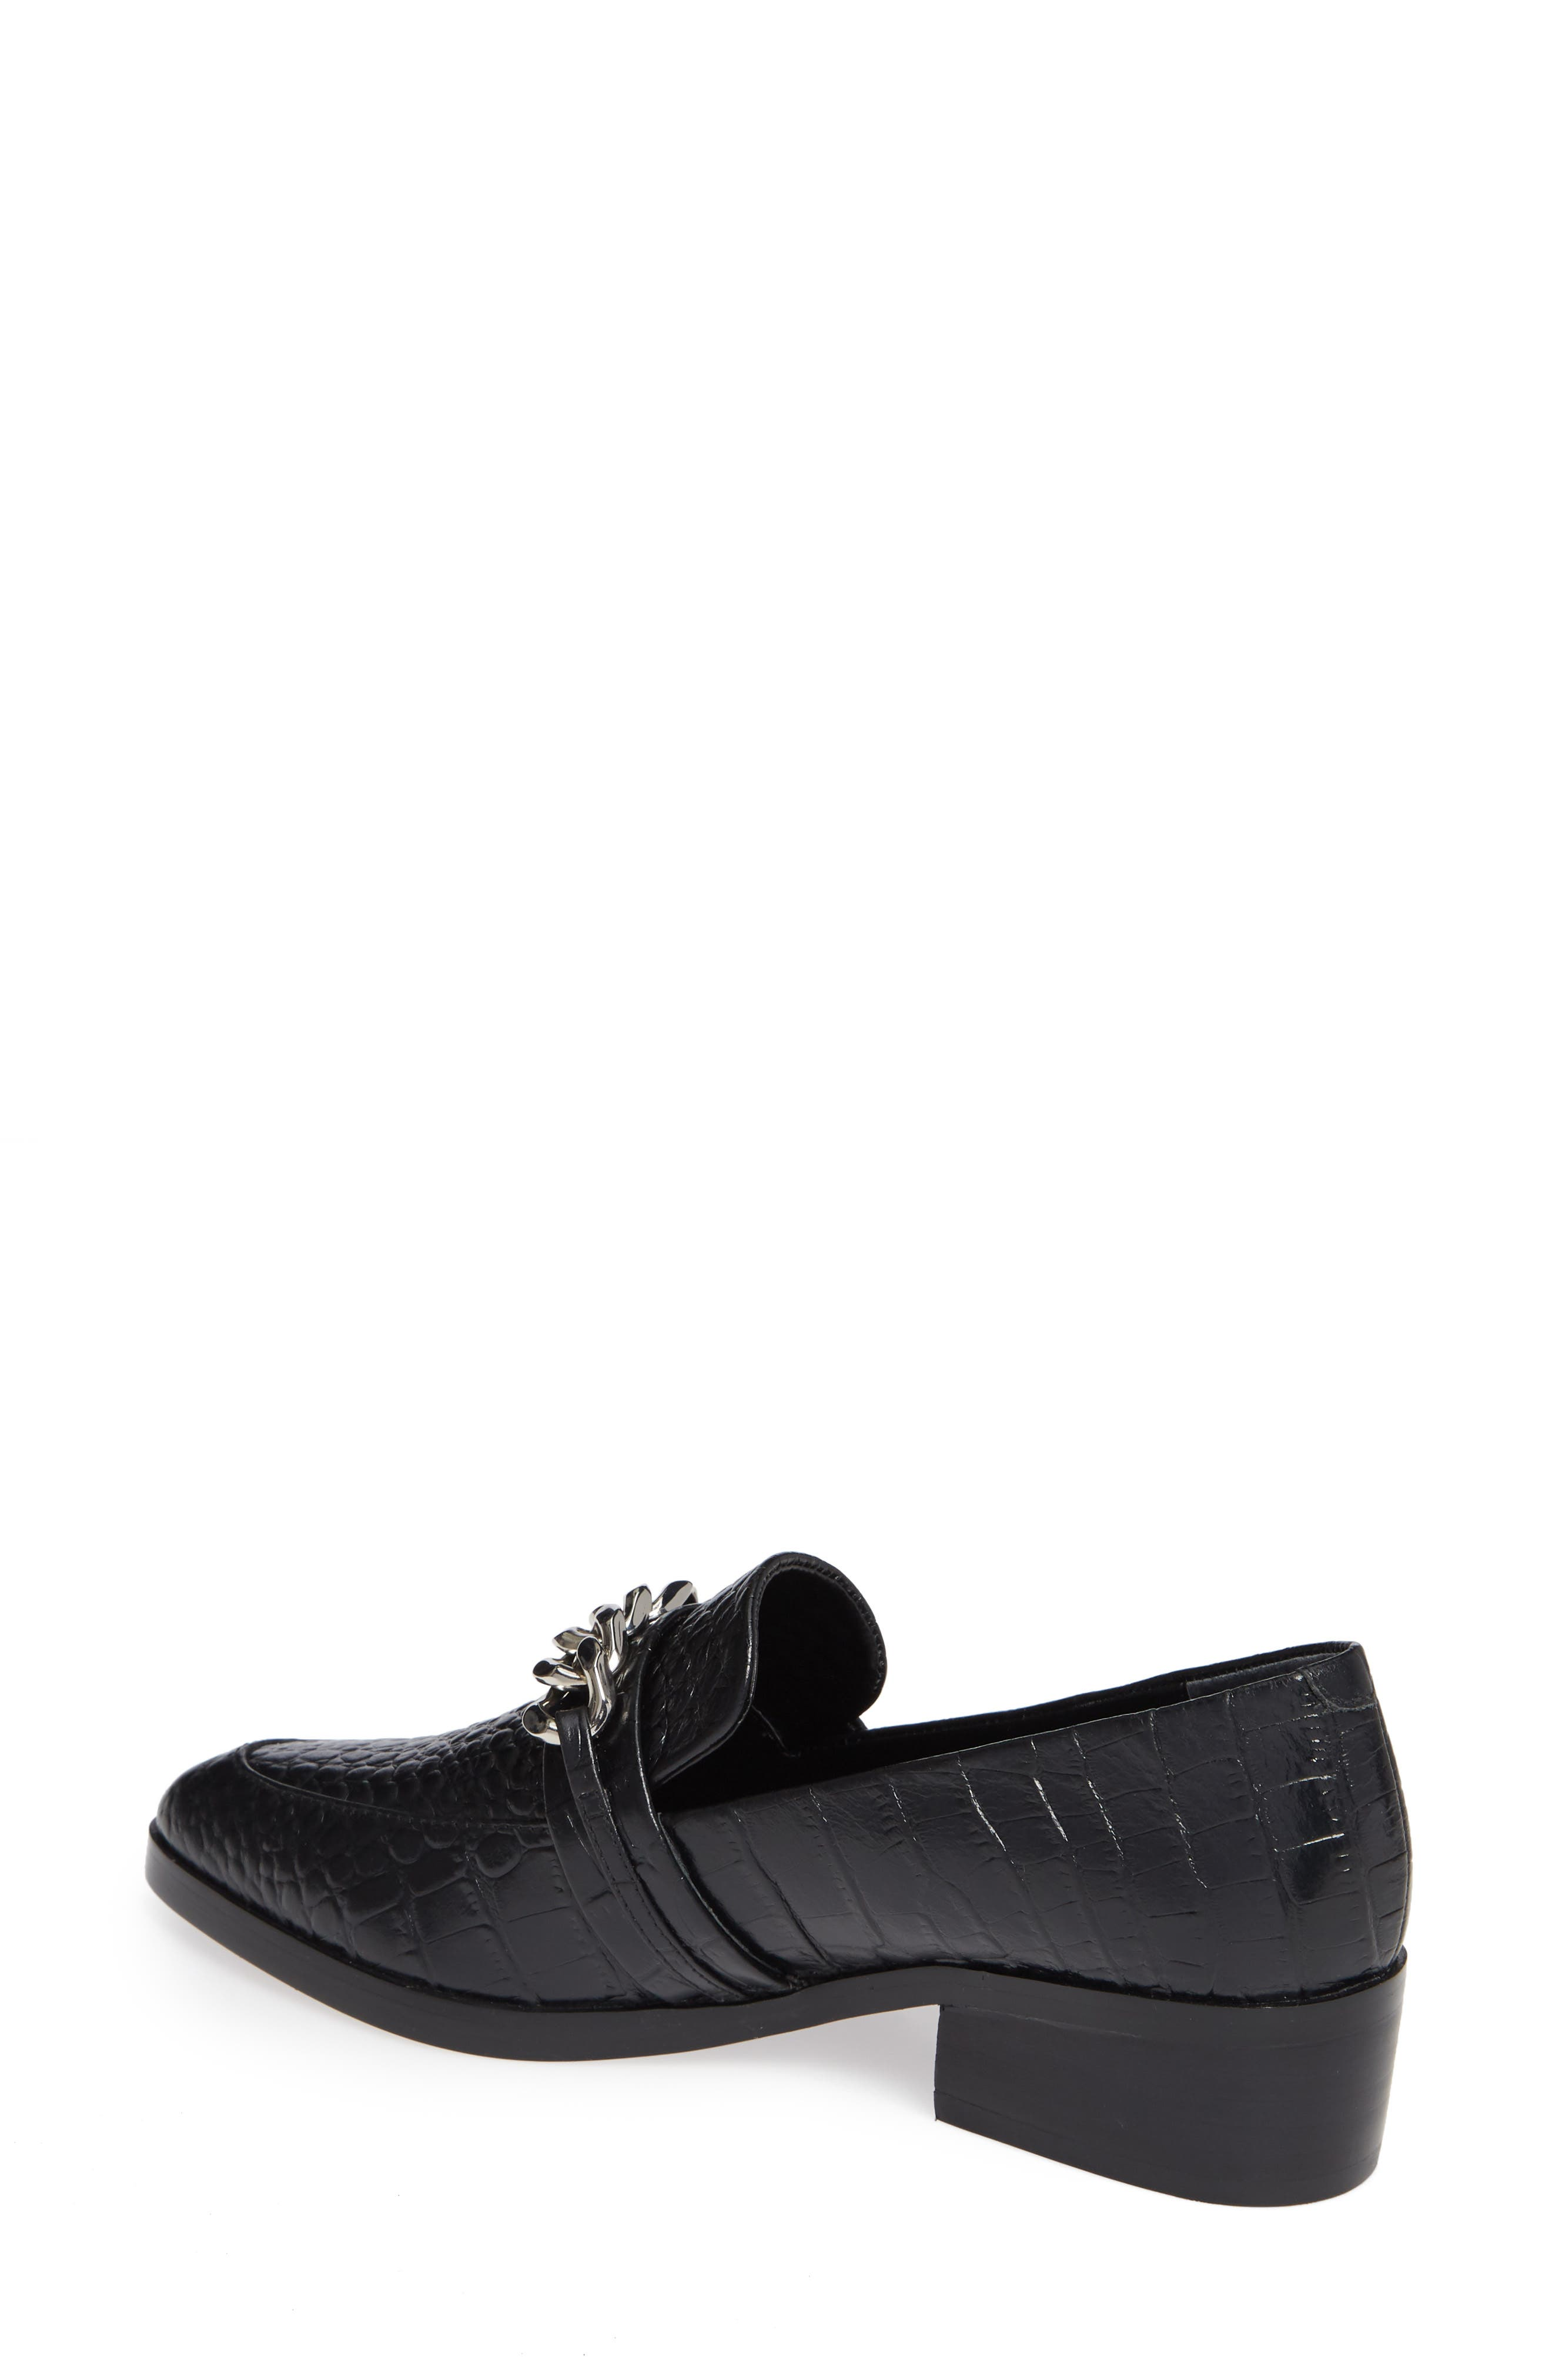 Molly Loafer,                             Alternate thumbnail 2, color,                             BLACK CROC LEATHER